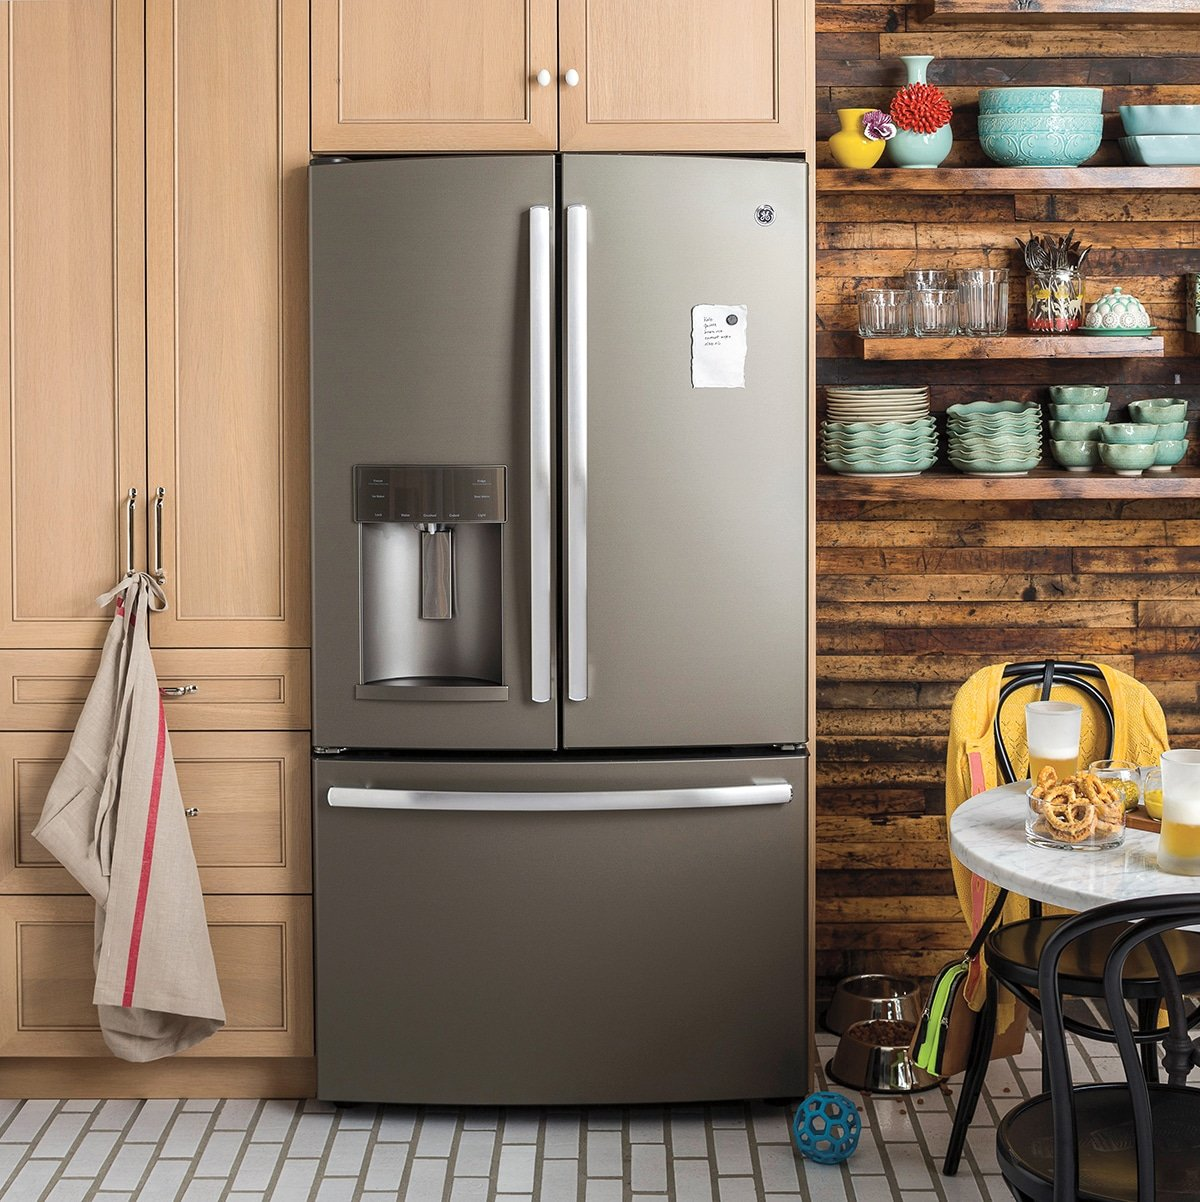 Spring Cleaning Made Easy With GE Appliances At Best Buy